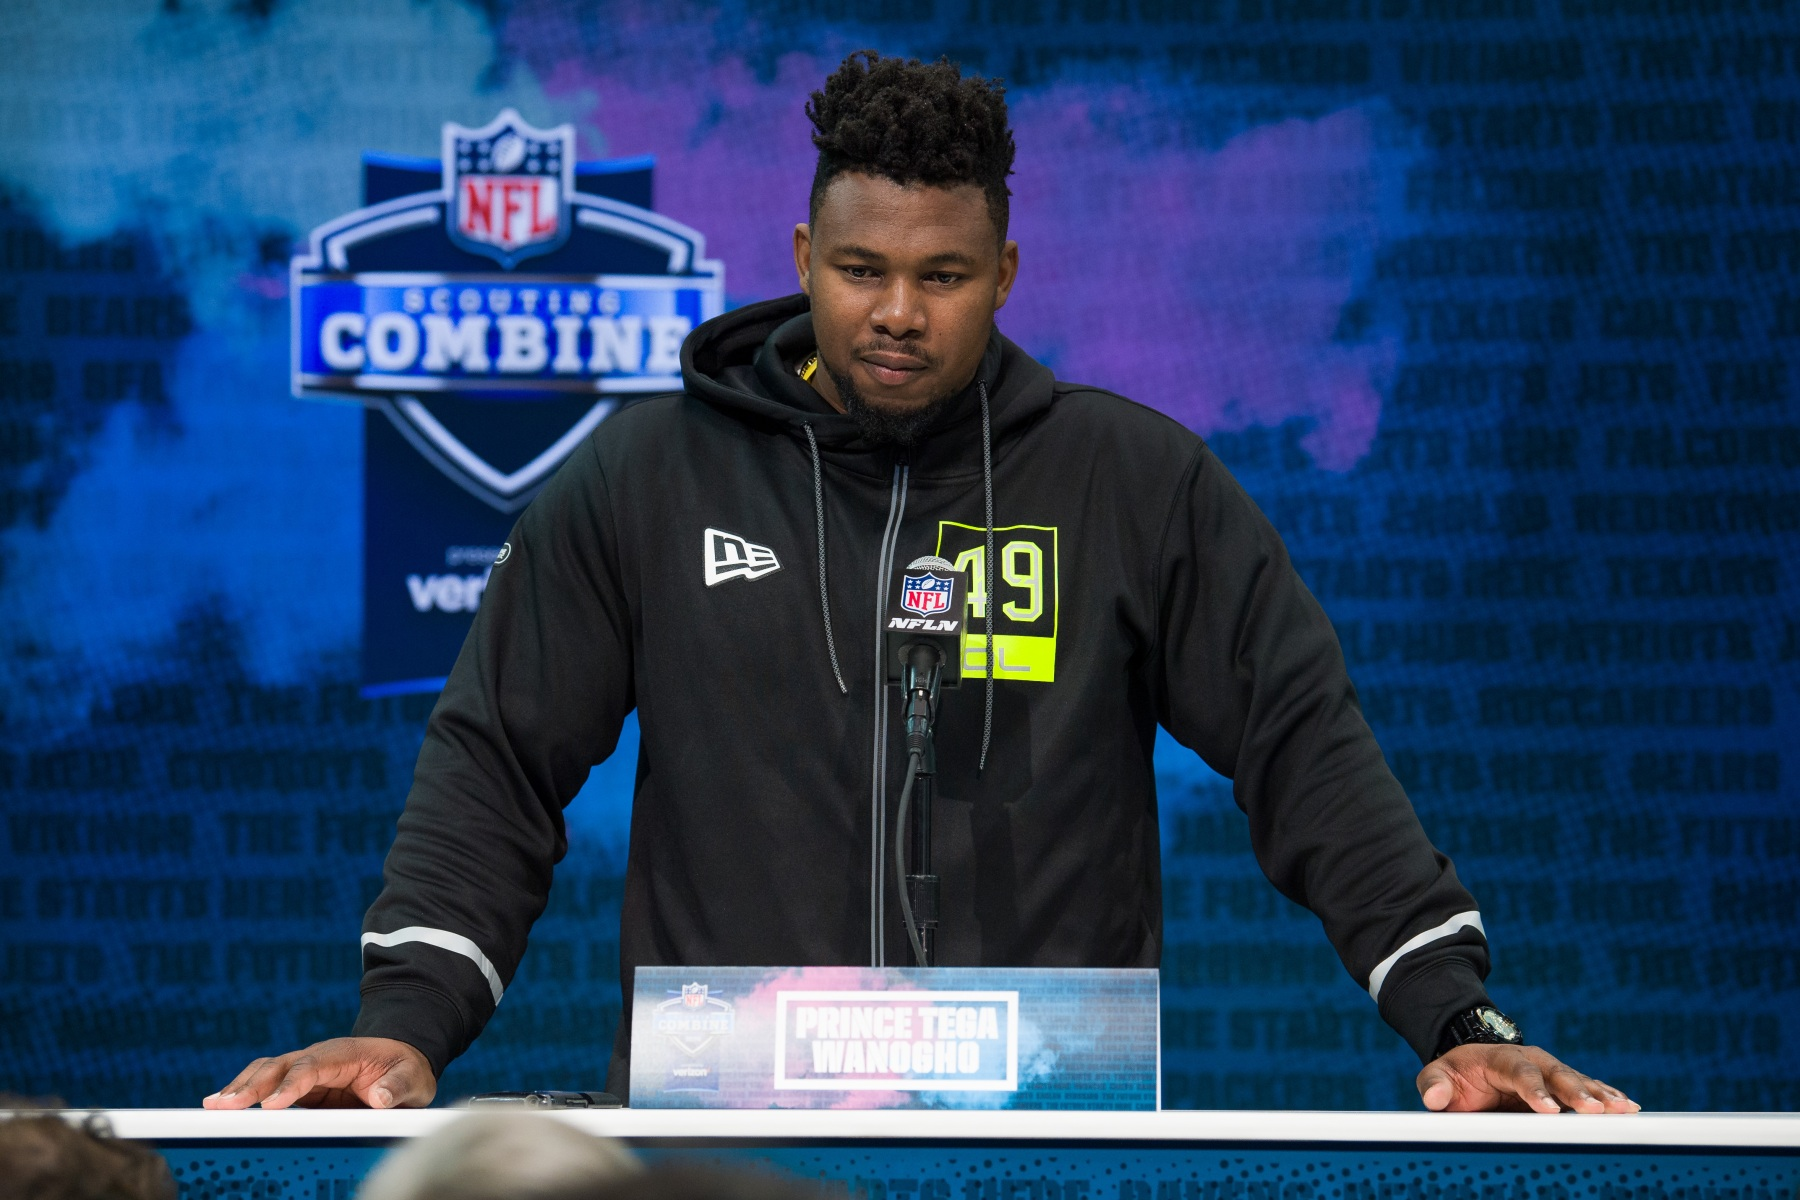 A Nigerian Prince Is Now a Touted NFL Draft Prospect